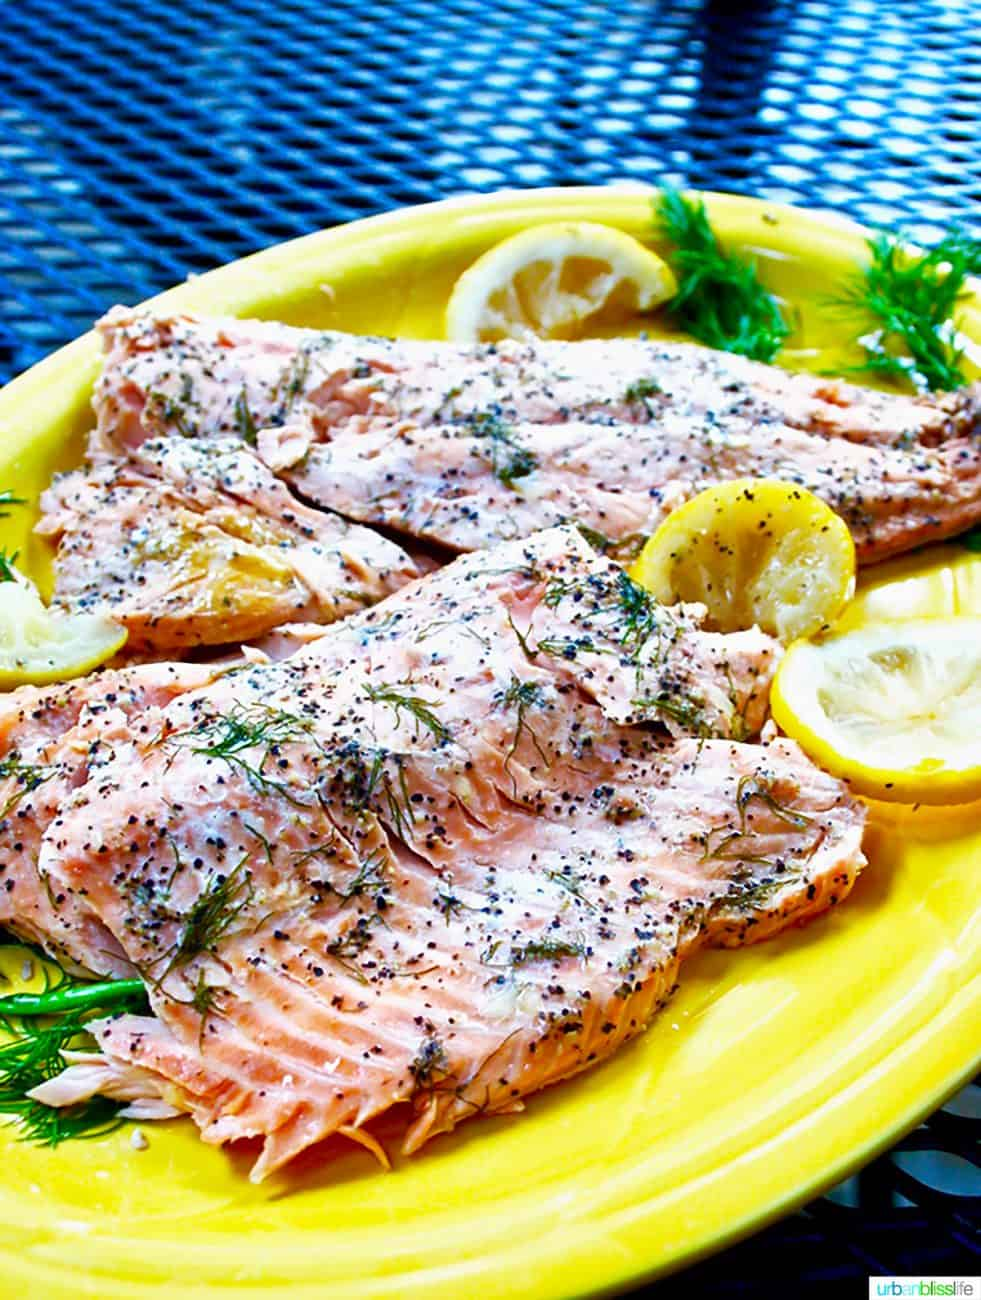 grilled salmon on a yellow platter with lemon